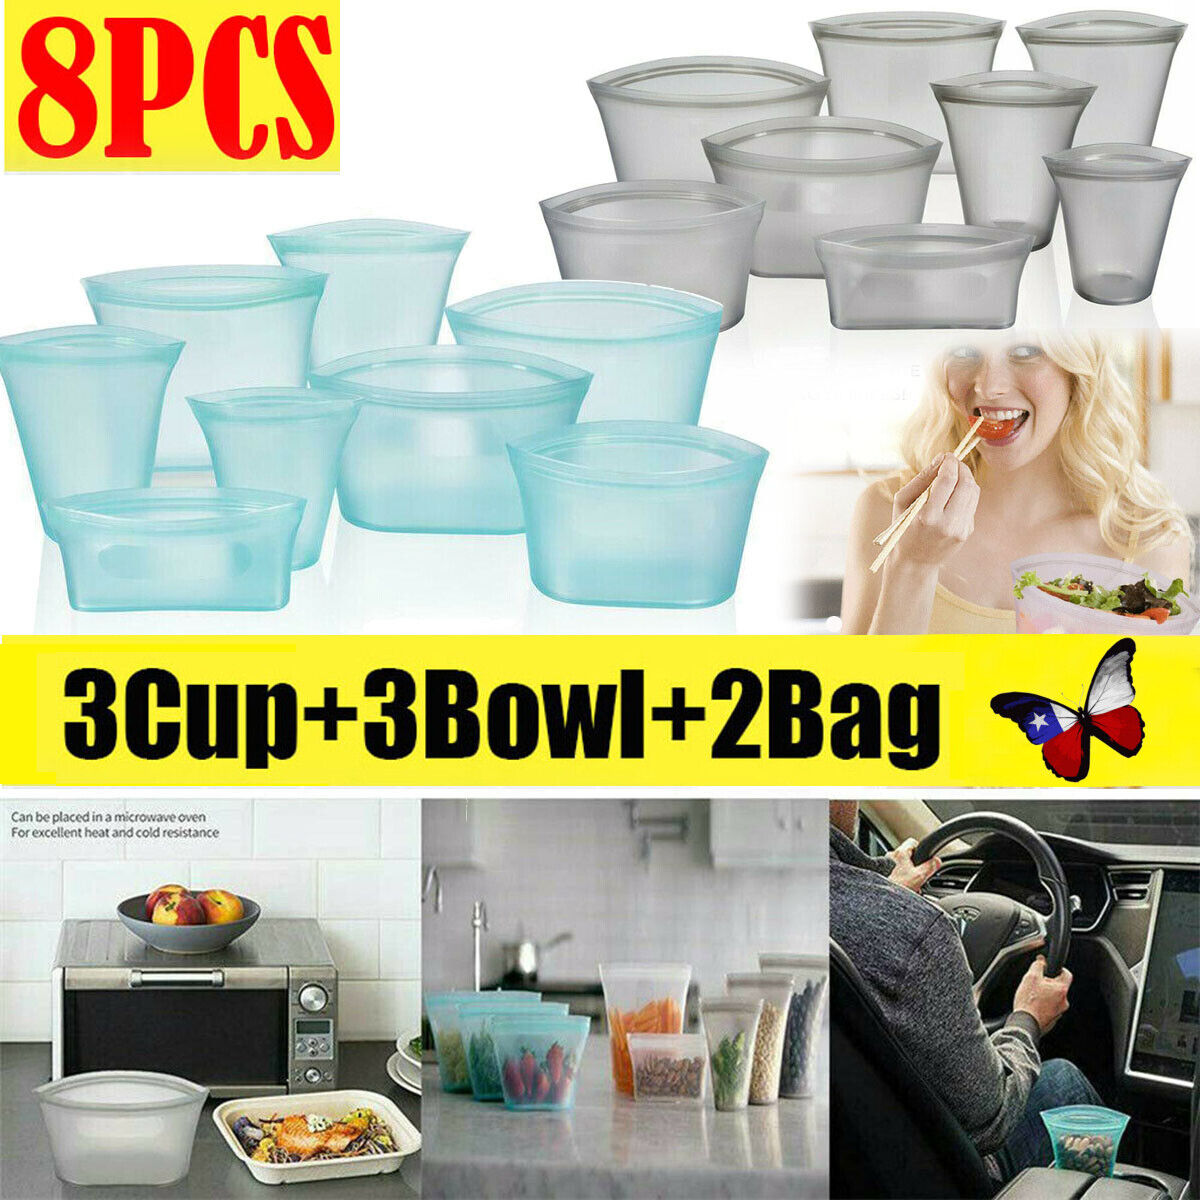 8pcs/Set Reusable Silicone Food Storage Bag Zip Lock Top Lea